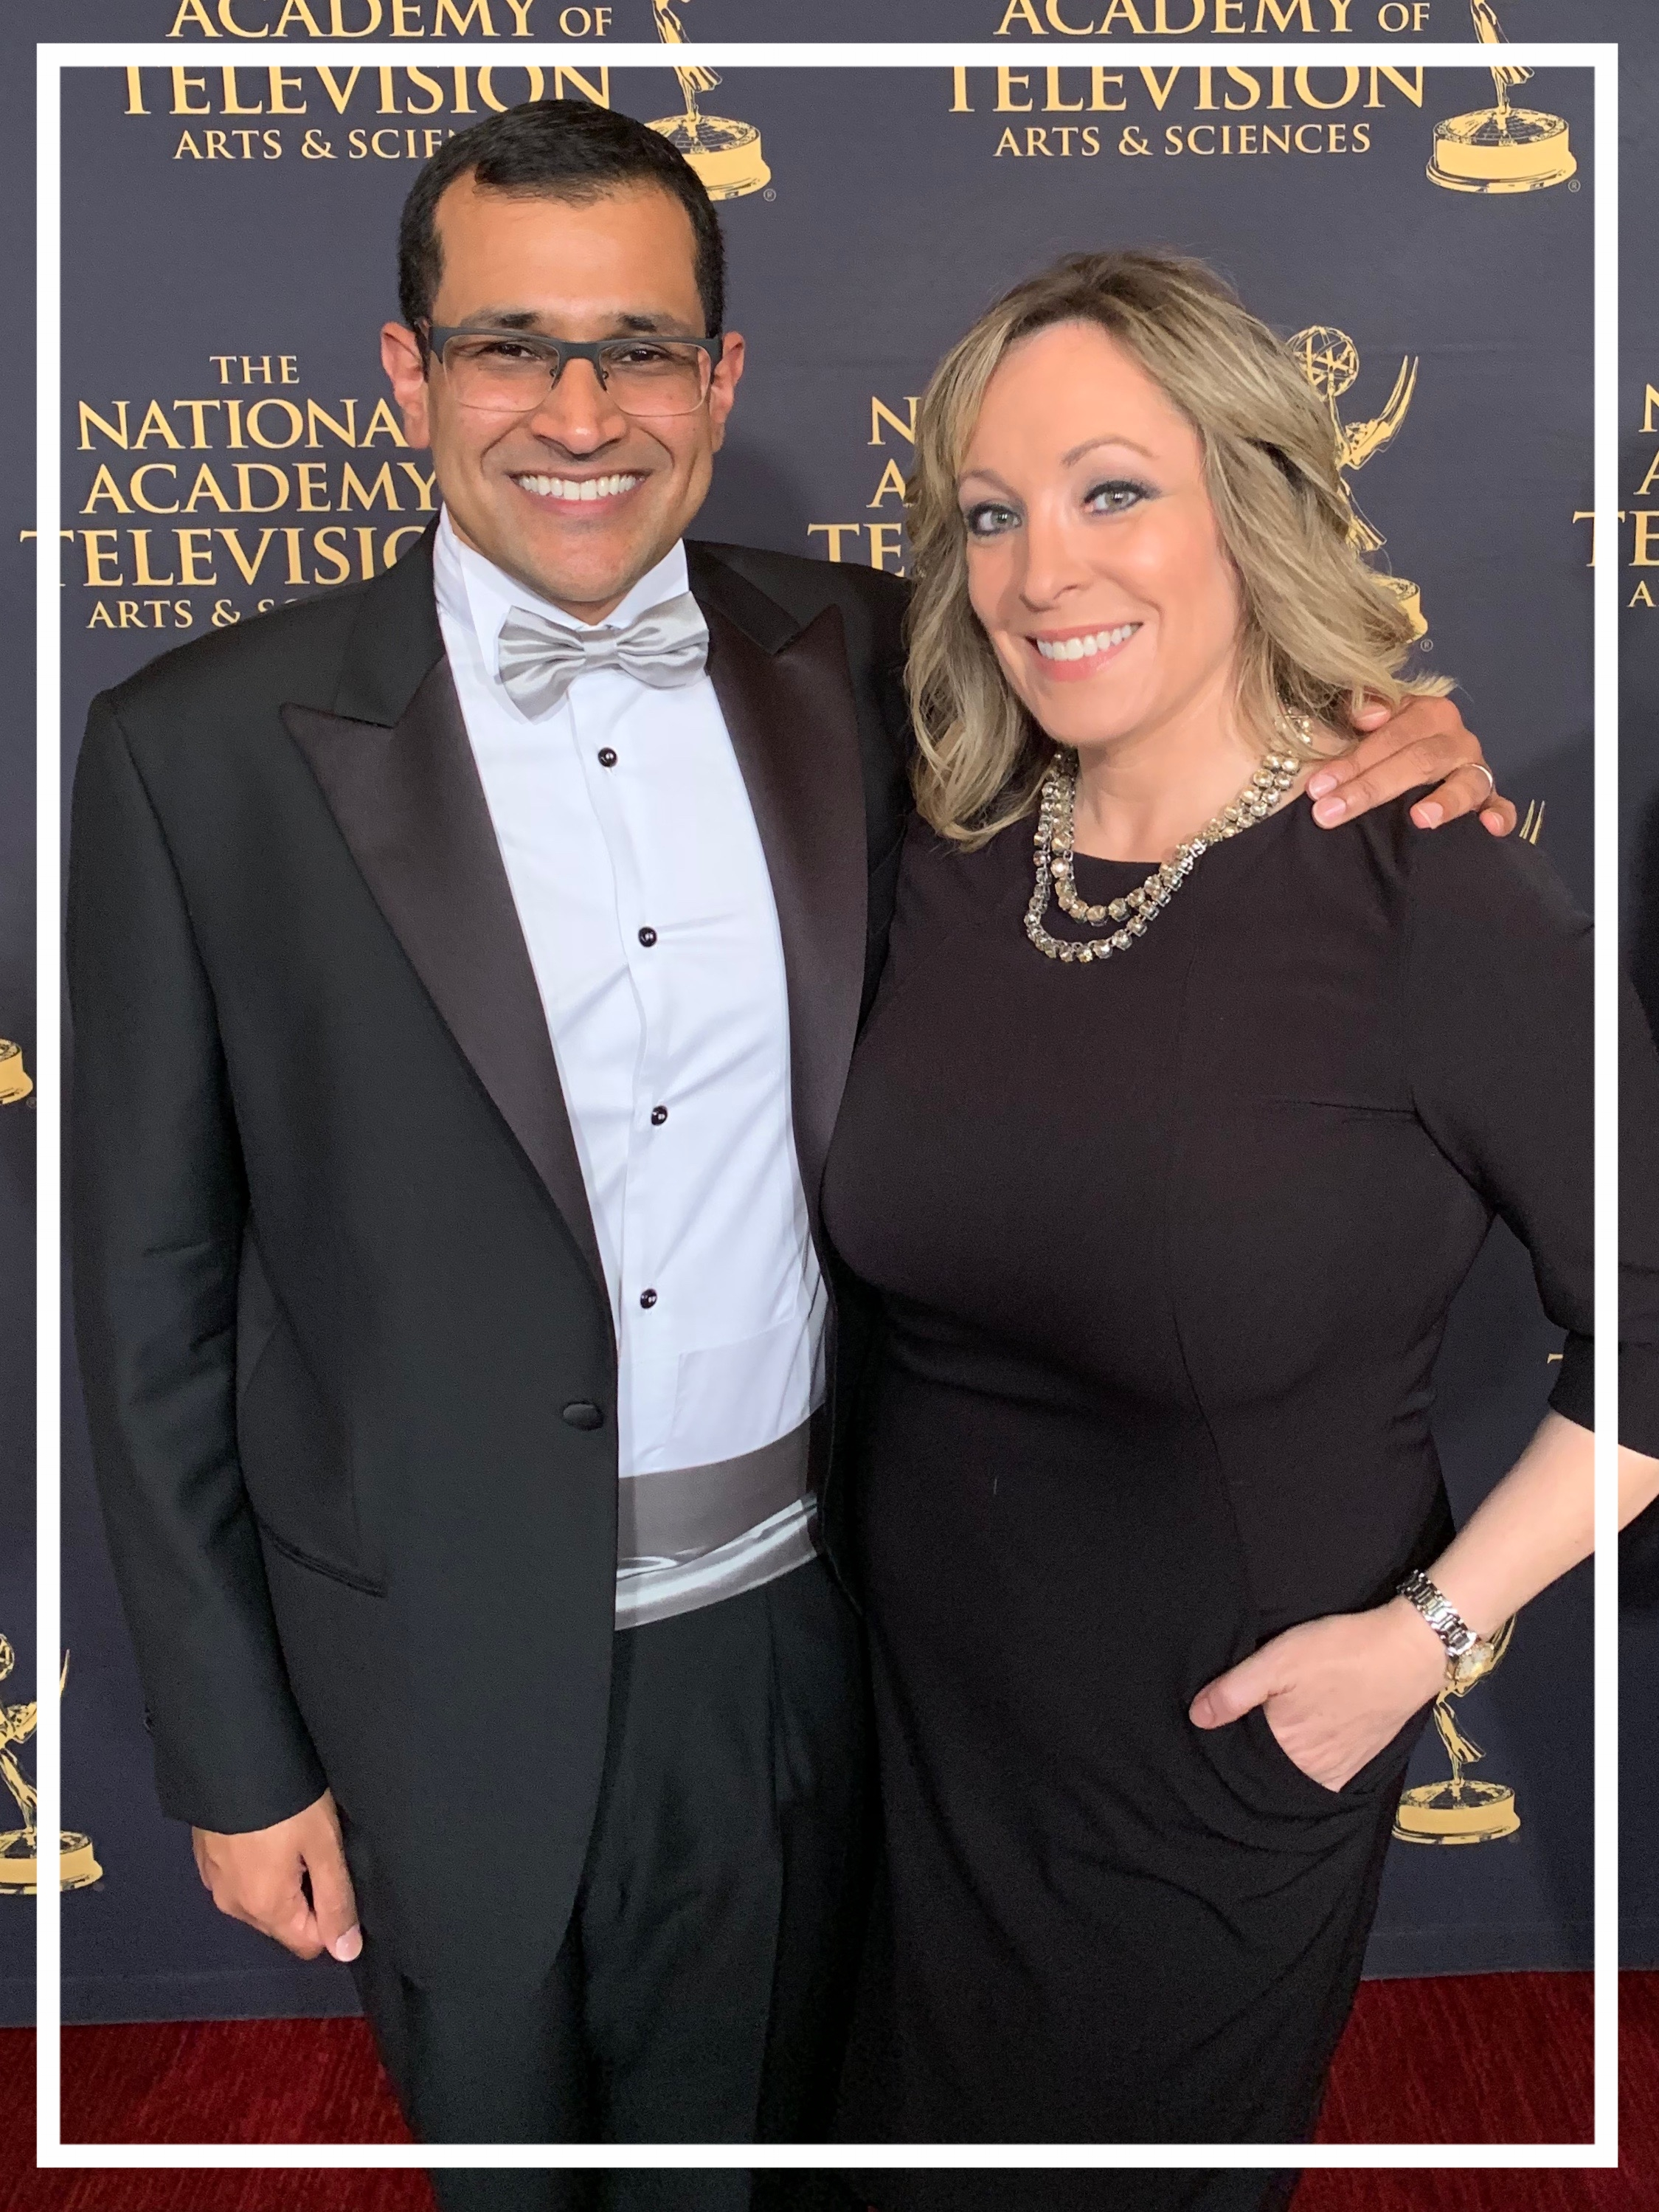 With Al Jazeera's White House correspondent Kimberly Halkett, at the 2018 News & Documentary Emmy Awards (New York, 2018)